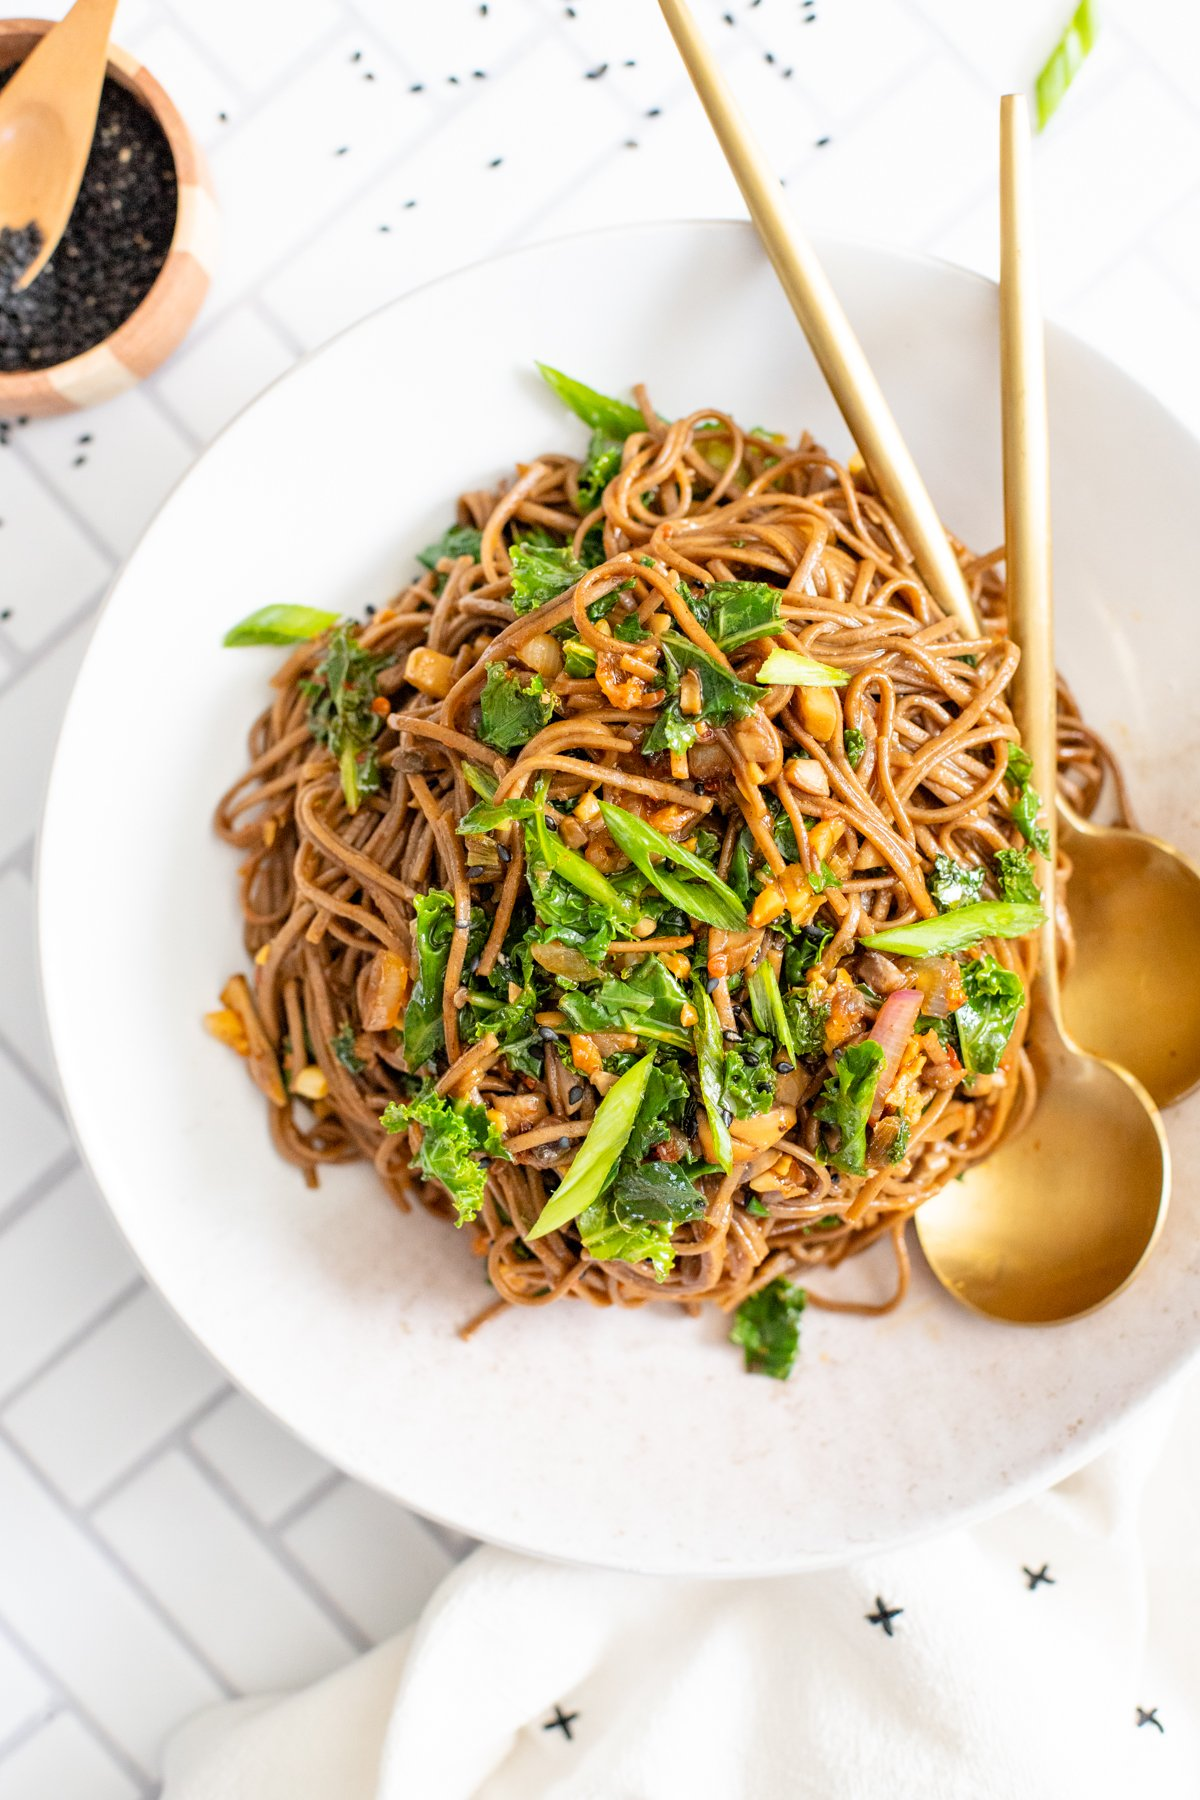 These Mushroom & Kale Soba Noodles are the perfect quick vegan dinner. The mushrooms are pan fried and tossed with kale, sauce & noodles   ThisSavoryVegan.com #thissavoryvegan #quickvegandinner #vegannoodles